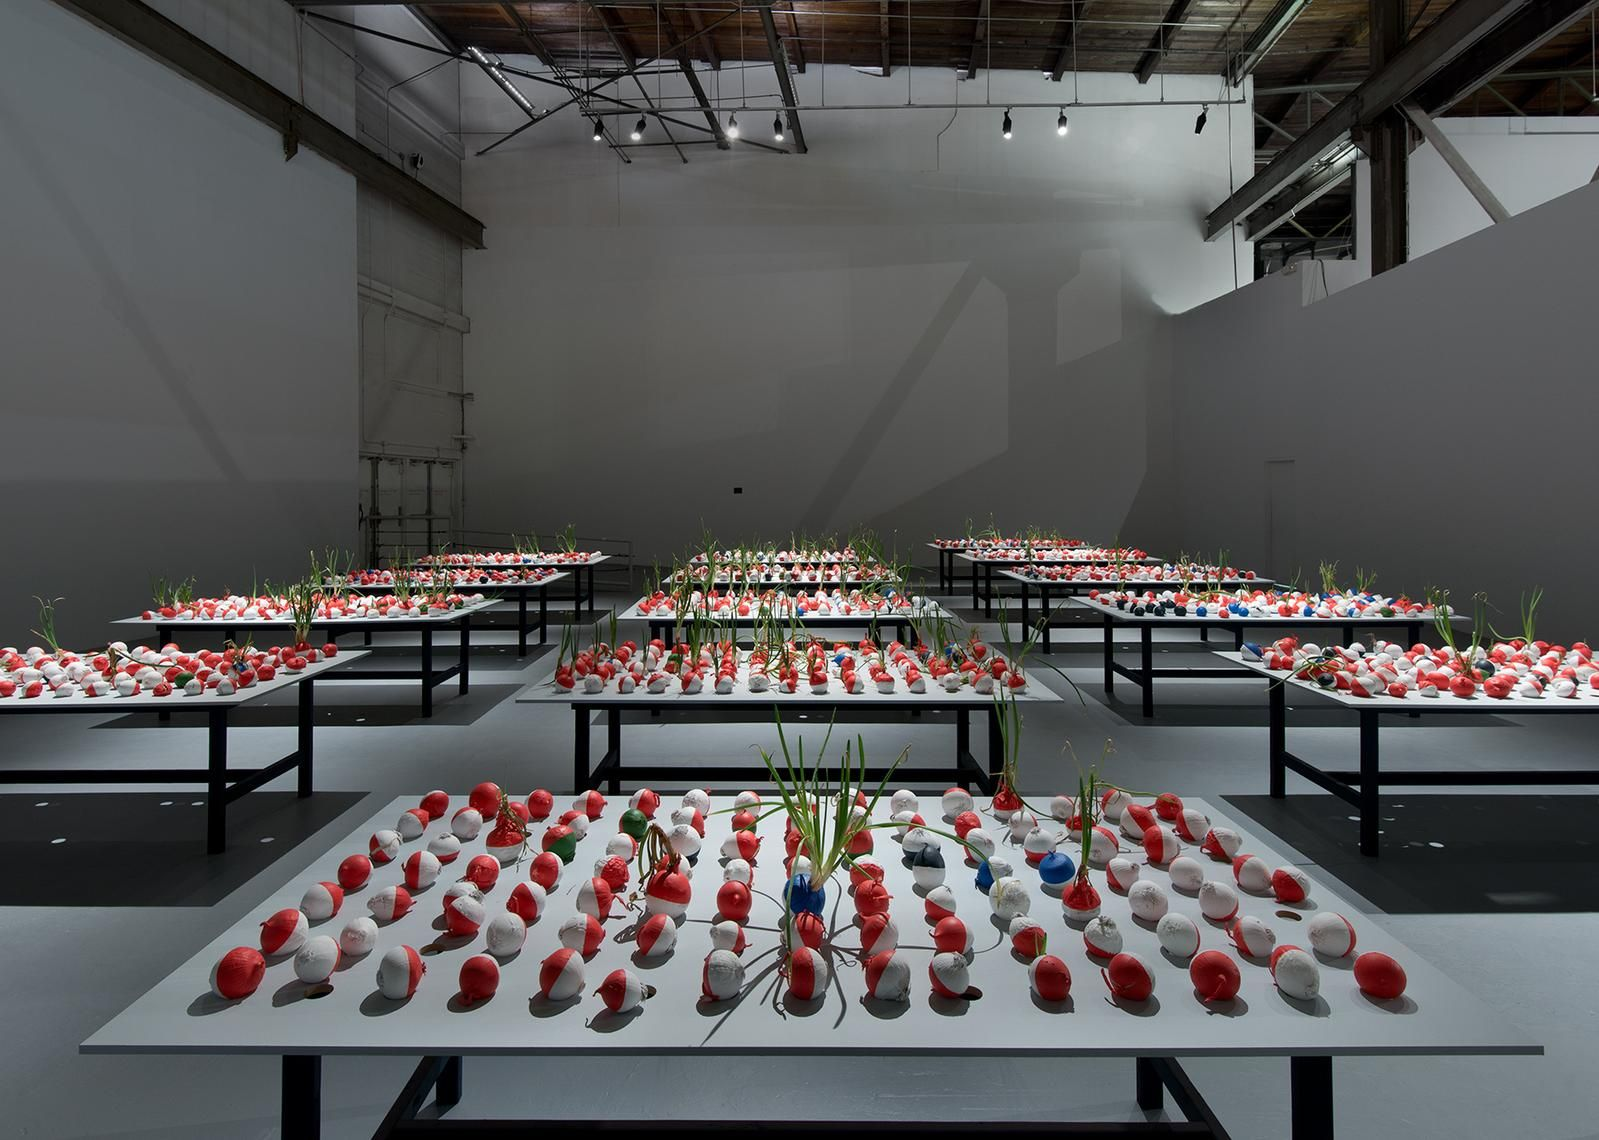 Installation view of William Pope.L: Trinket, March 20–June 28, 2015 at The Geffen Contemporary at MOCA, courtesy of the artist and The Museum of Contemporary Art, Los Angeles, photo by Brian Forrest